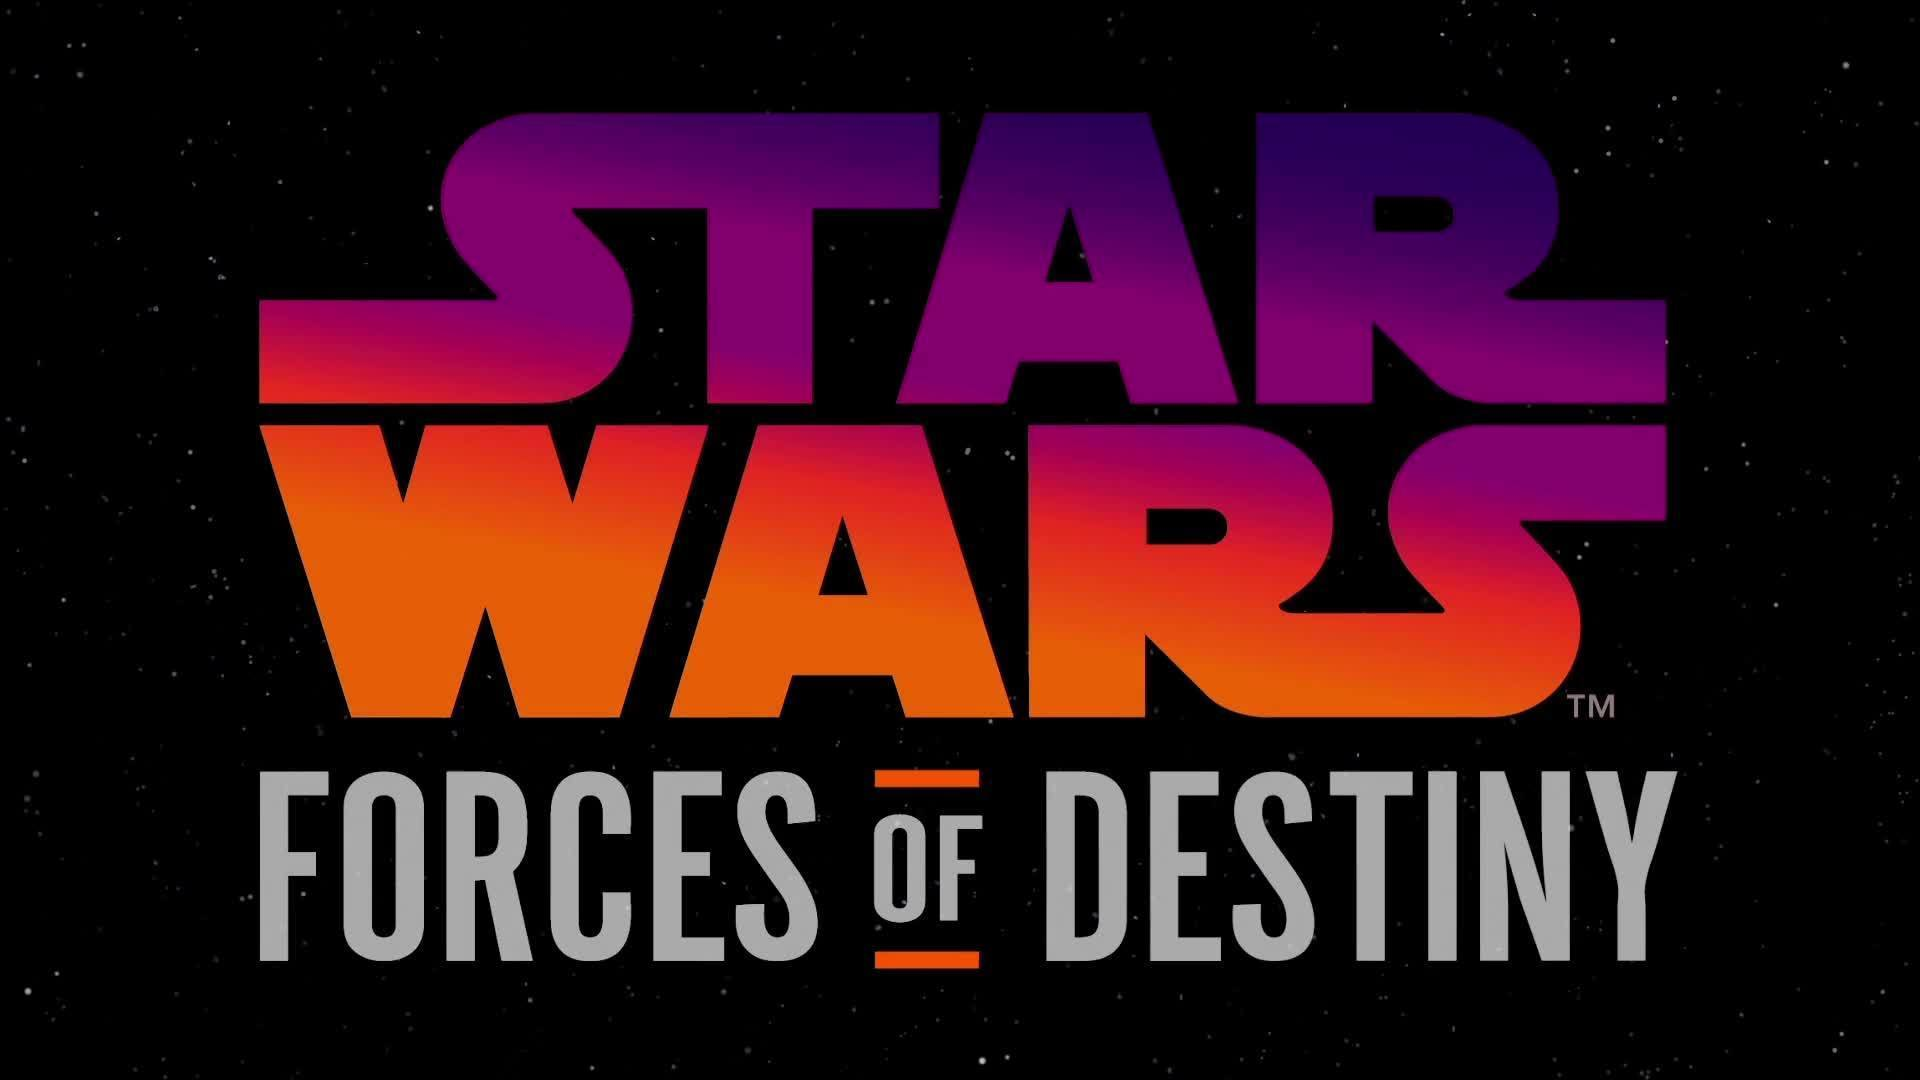 Art History | Star Wars Forces of Destiny | Disney